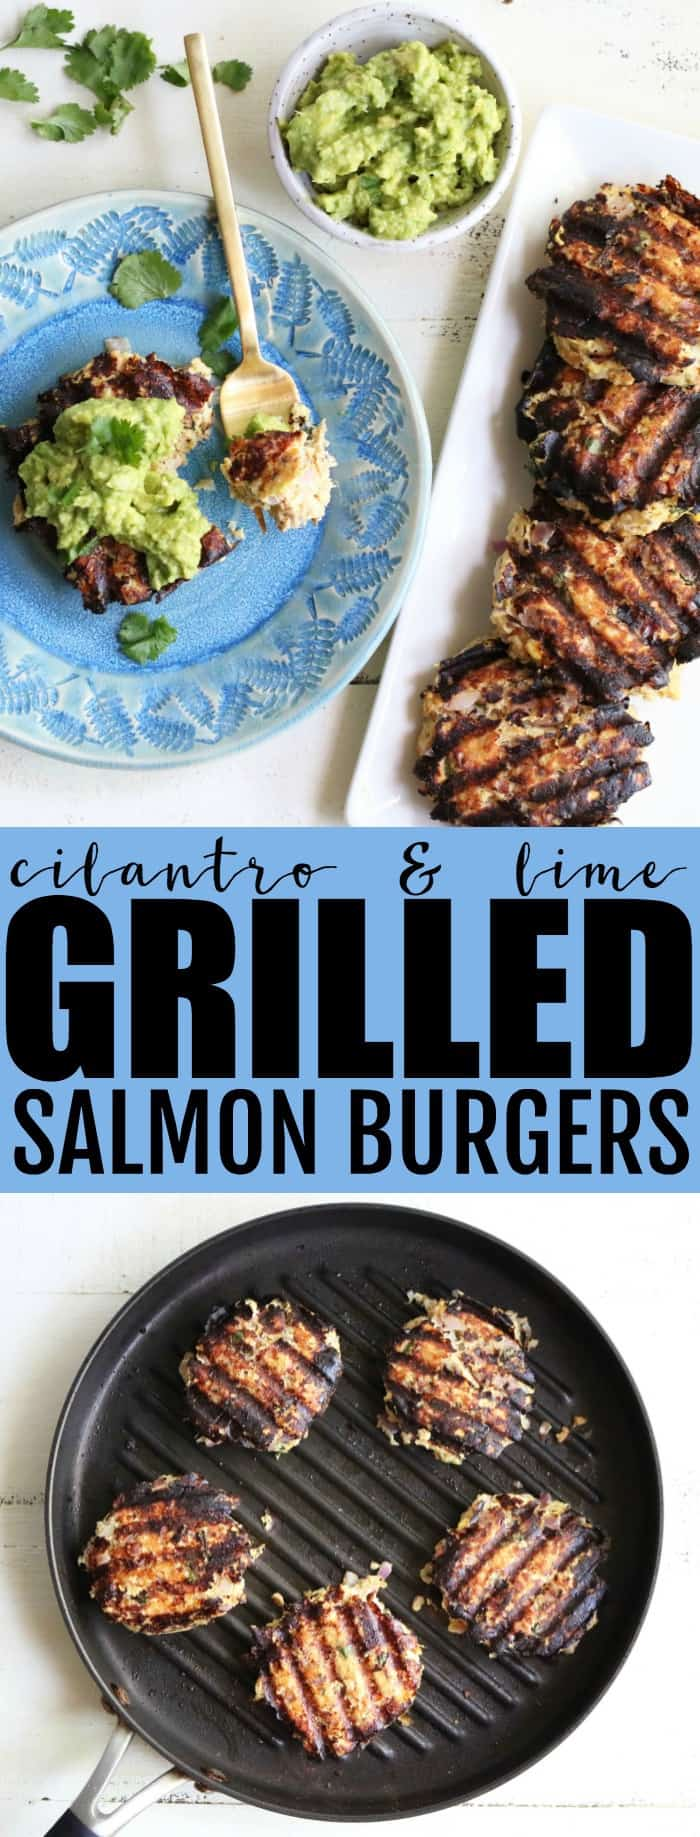 Cilantro + Lime Grilled Salmon Burgers